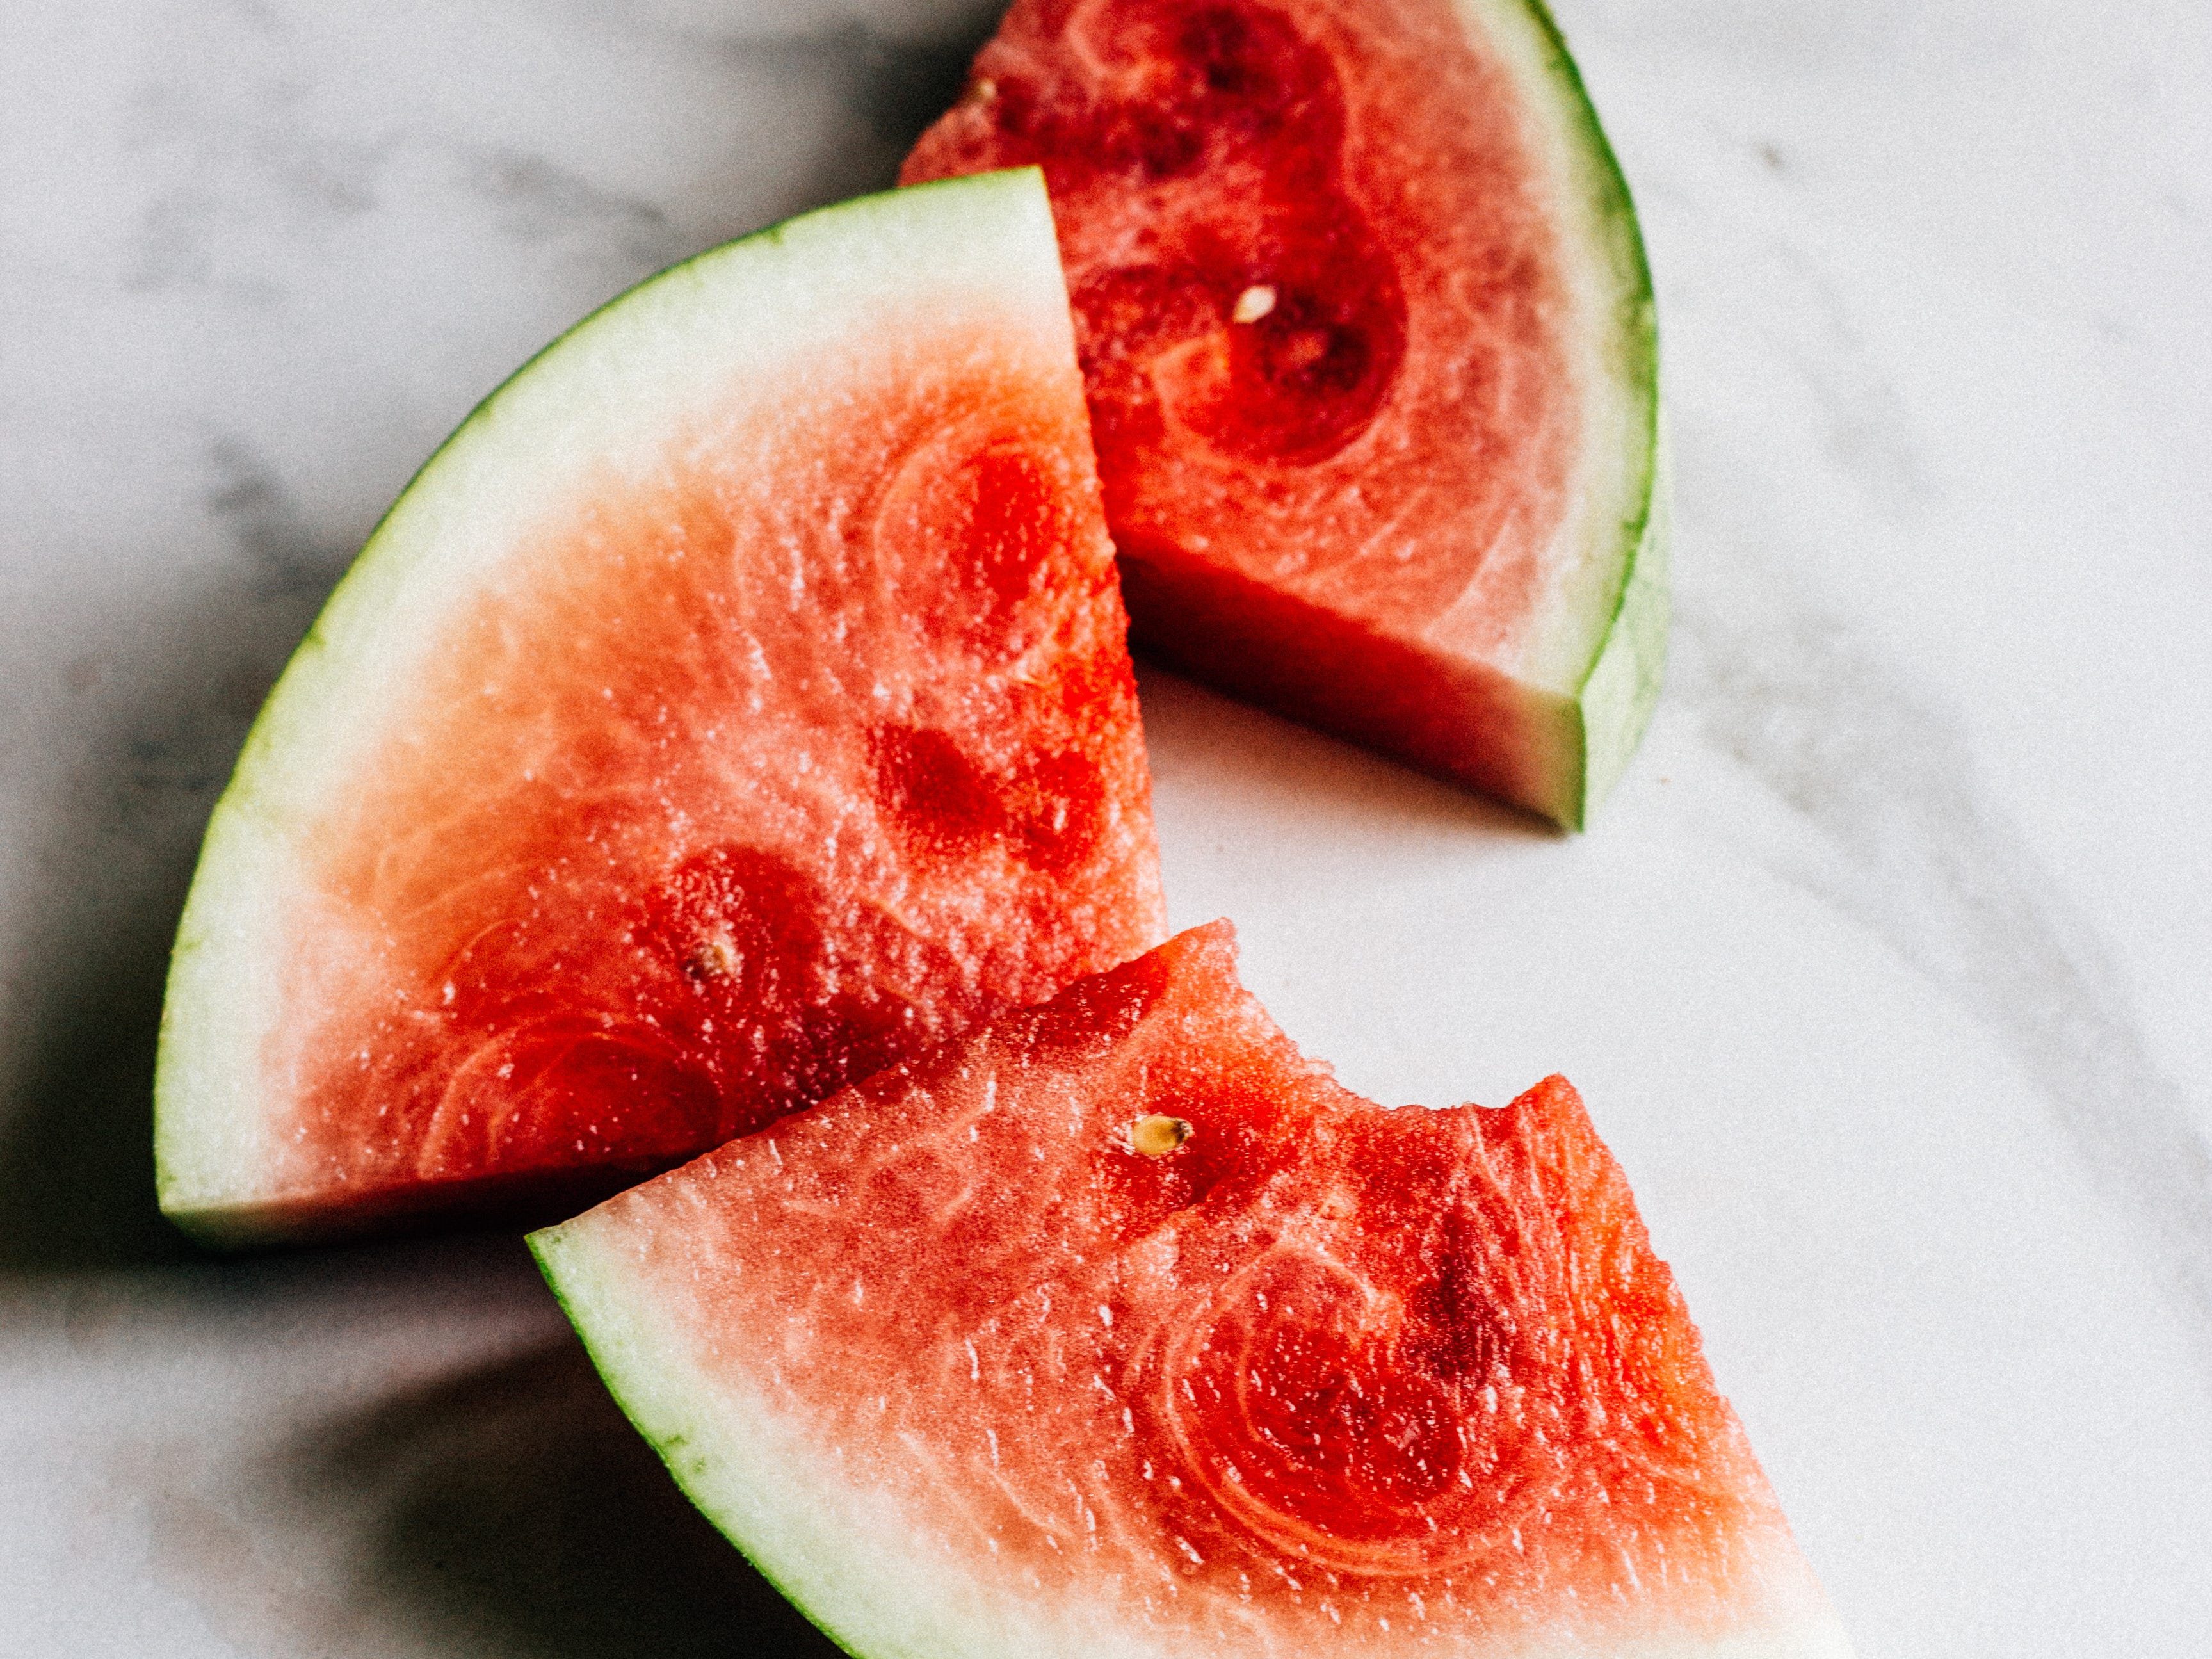 Once produce, like watermelon, is cut, it needs to be refrigerated.